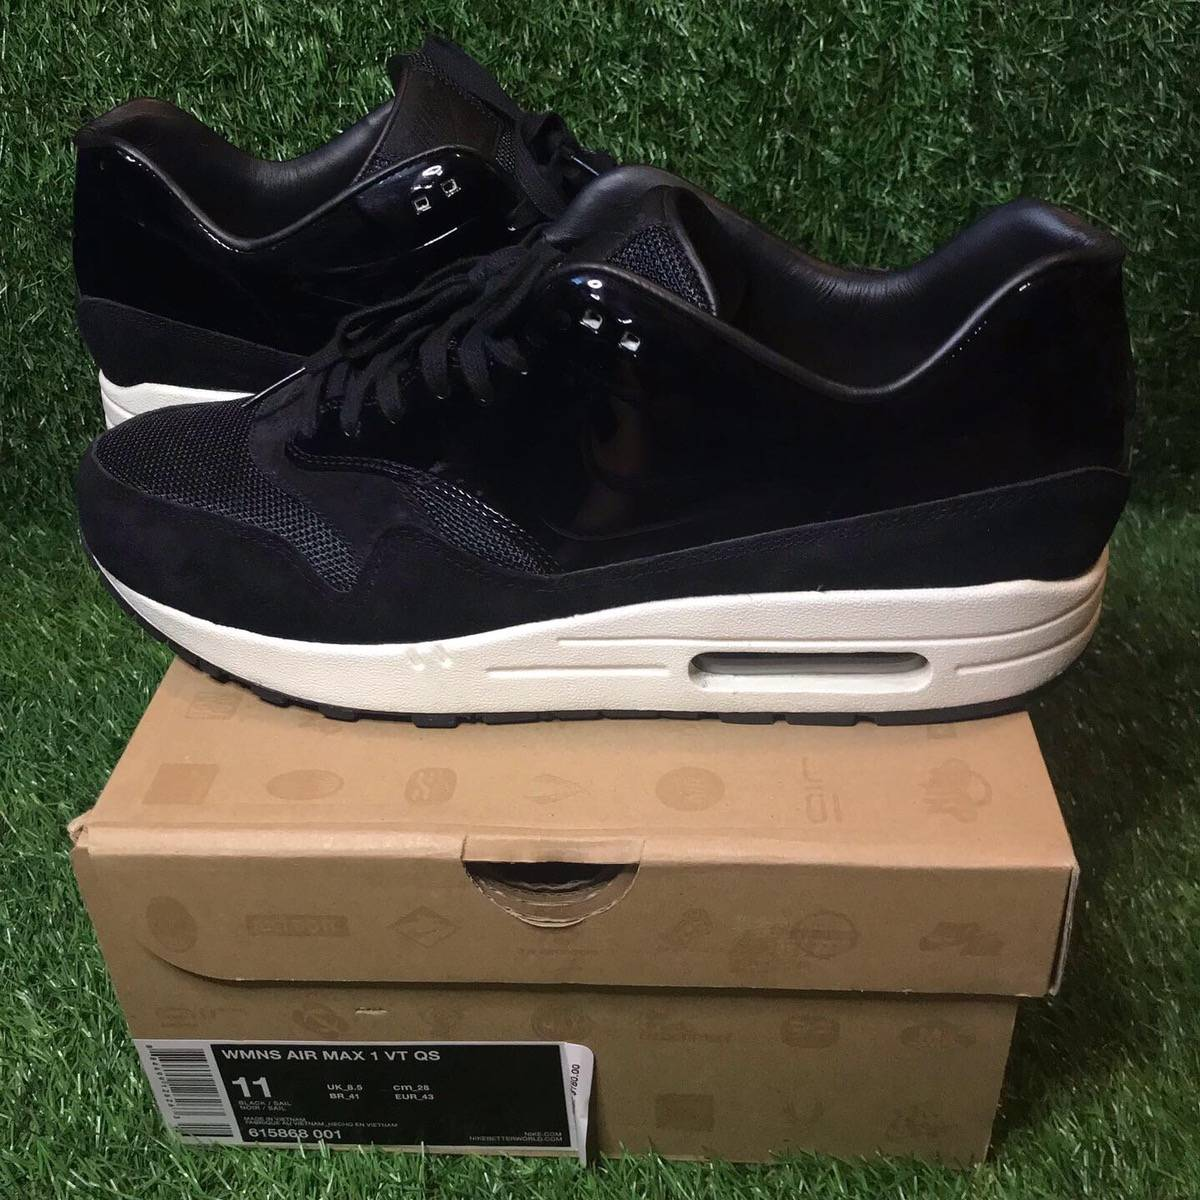 Nike Women's Nike Air Max 1 Vt Qs Black Size 11 $36